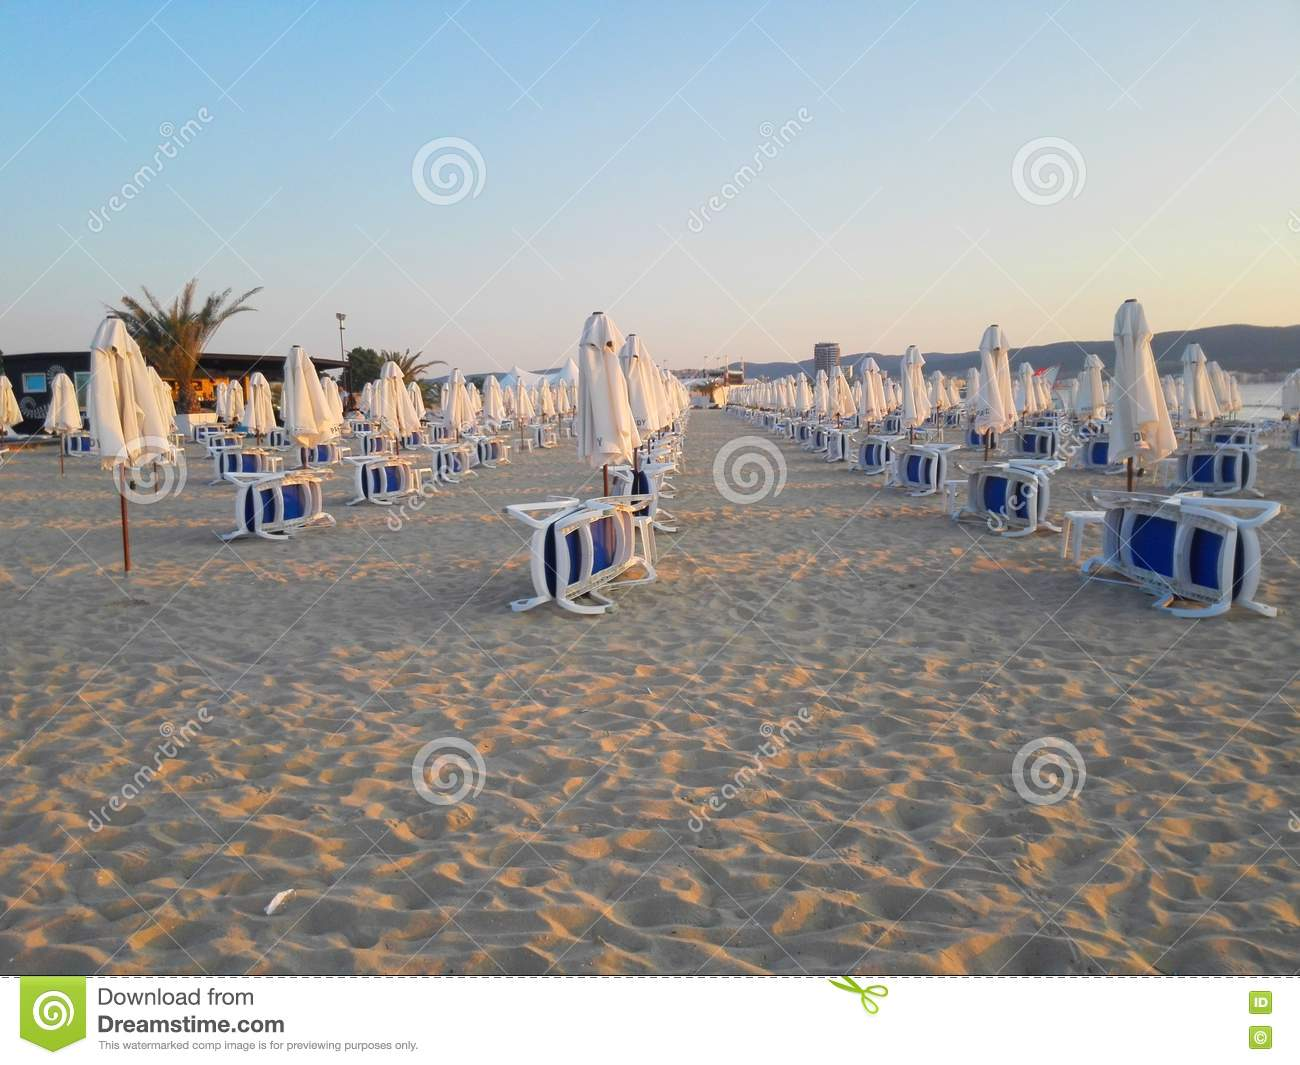 Beach chairs sunrise - Beach In Sunrise With Beach Chairs And Umbrellas Editorial Stock Image